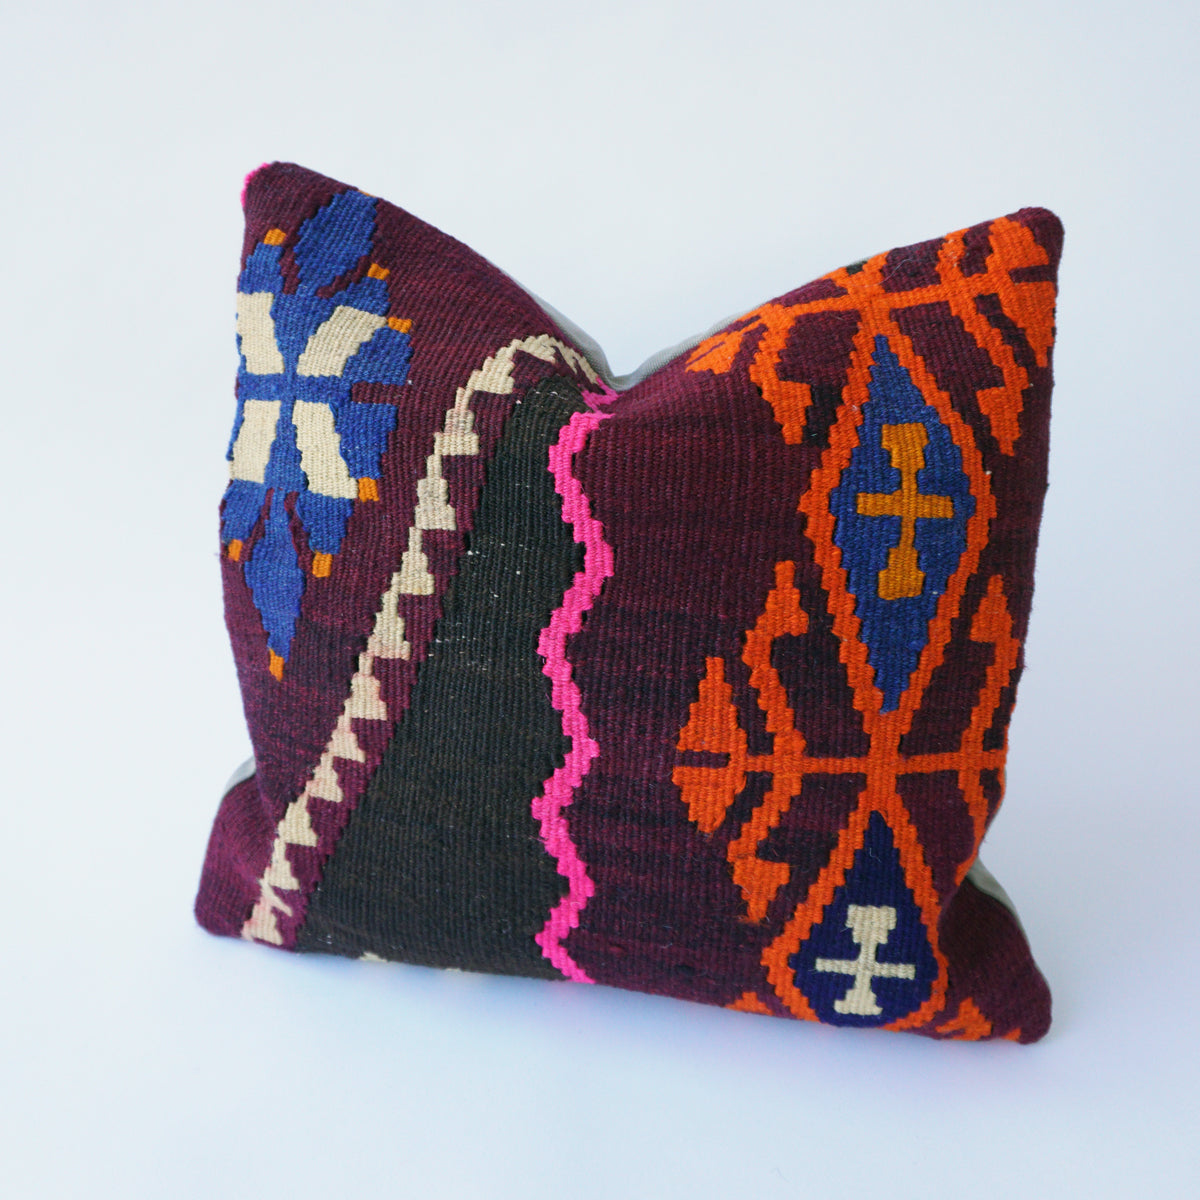 This pair of 16x16 Kilim pillowcases are cut from the same kilim rug.  Our pillowcases are made from recycled handwoven vintage Turkish kilims.  Zipper closure. Insert not included. Natural dyes. Wool. Each pillow is one of a kind.  Colors include olive, off white, salmon, gray and gold.